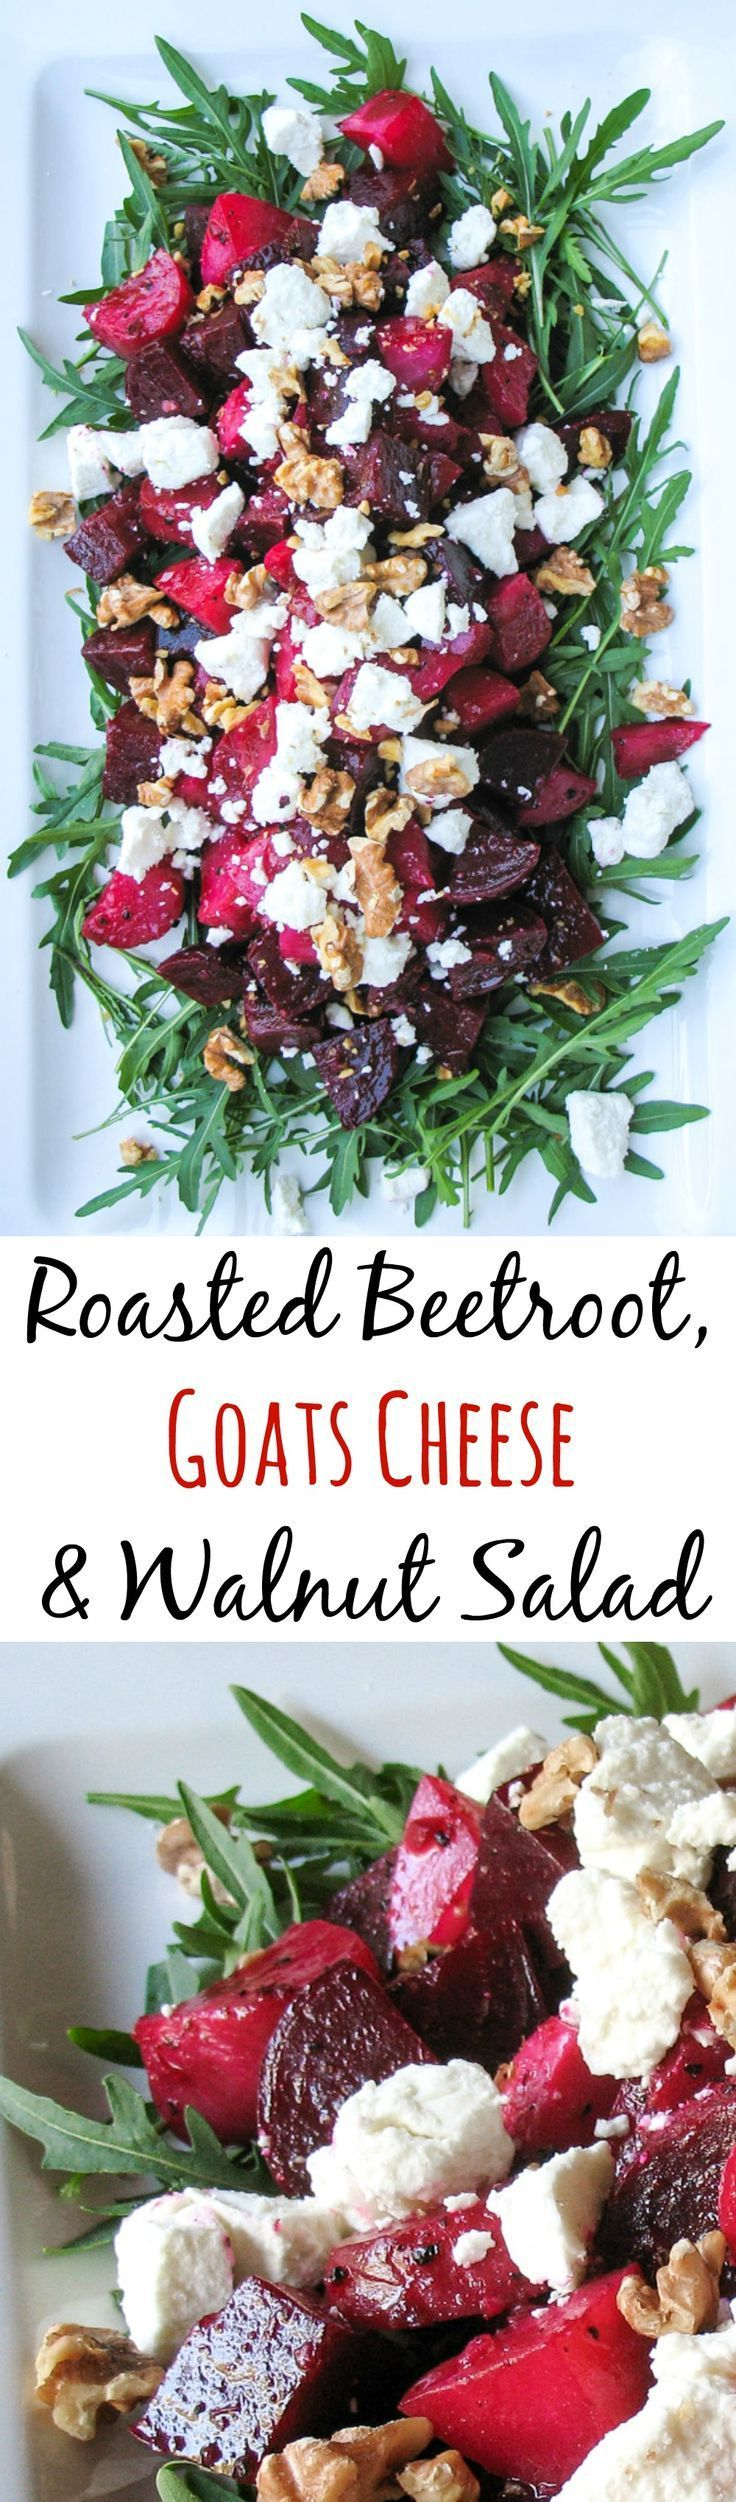 Roasted Beetroot Goats Cheese & Walnut Salad